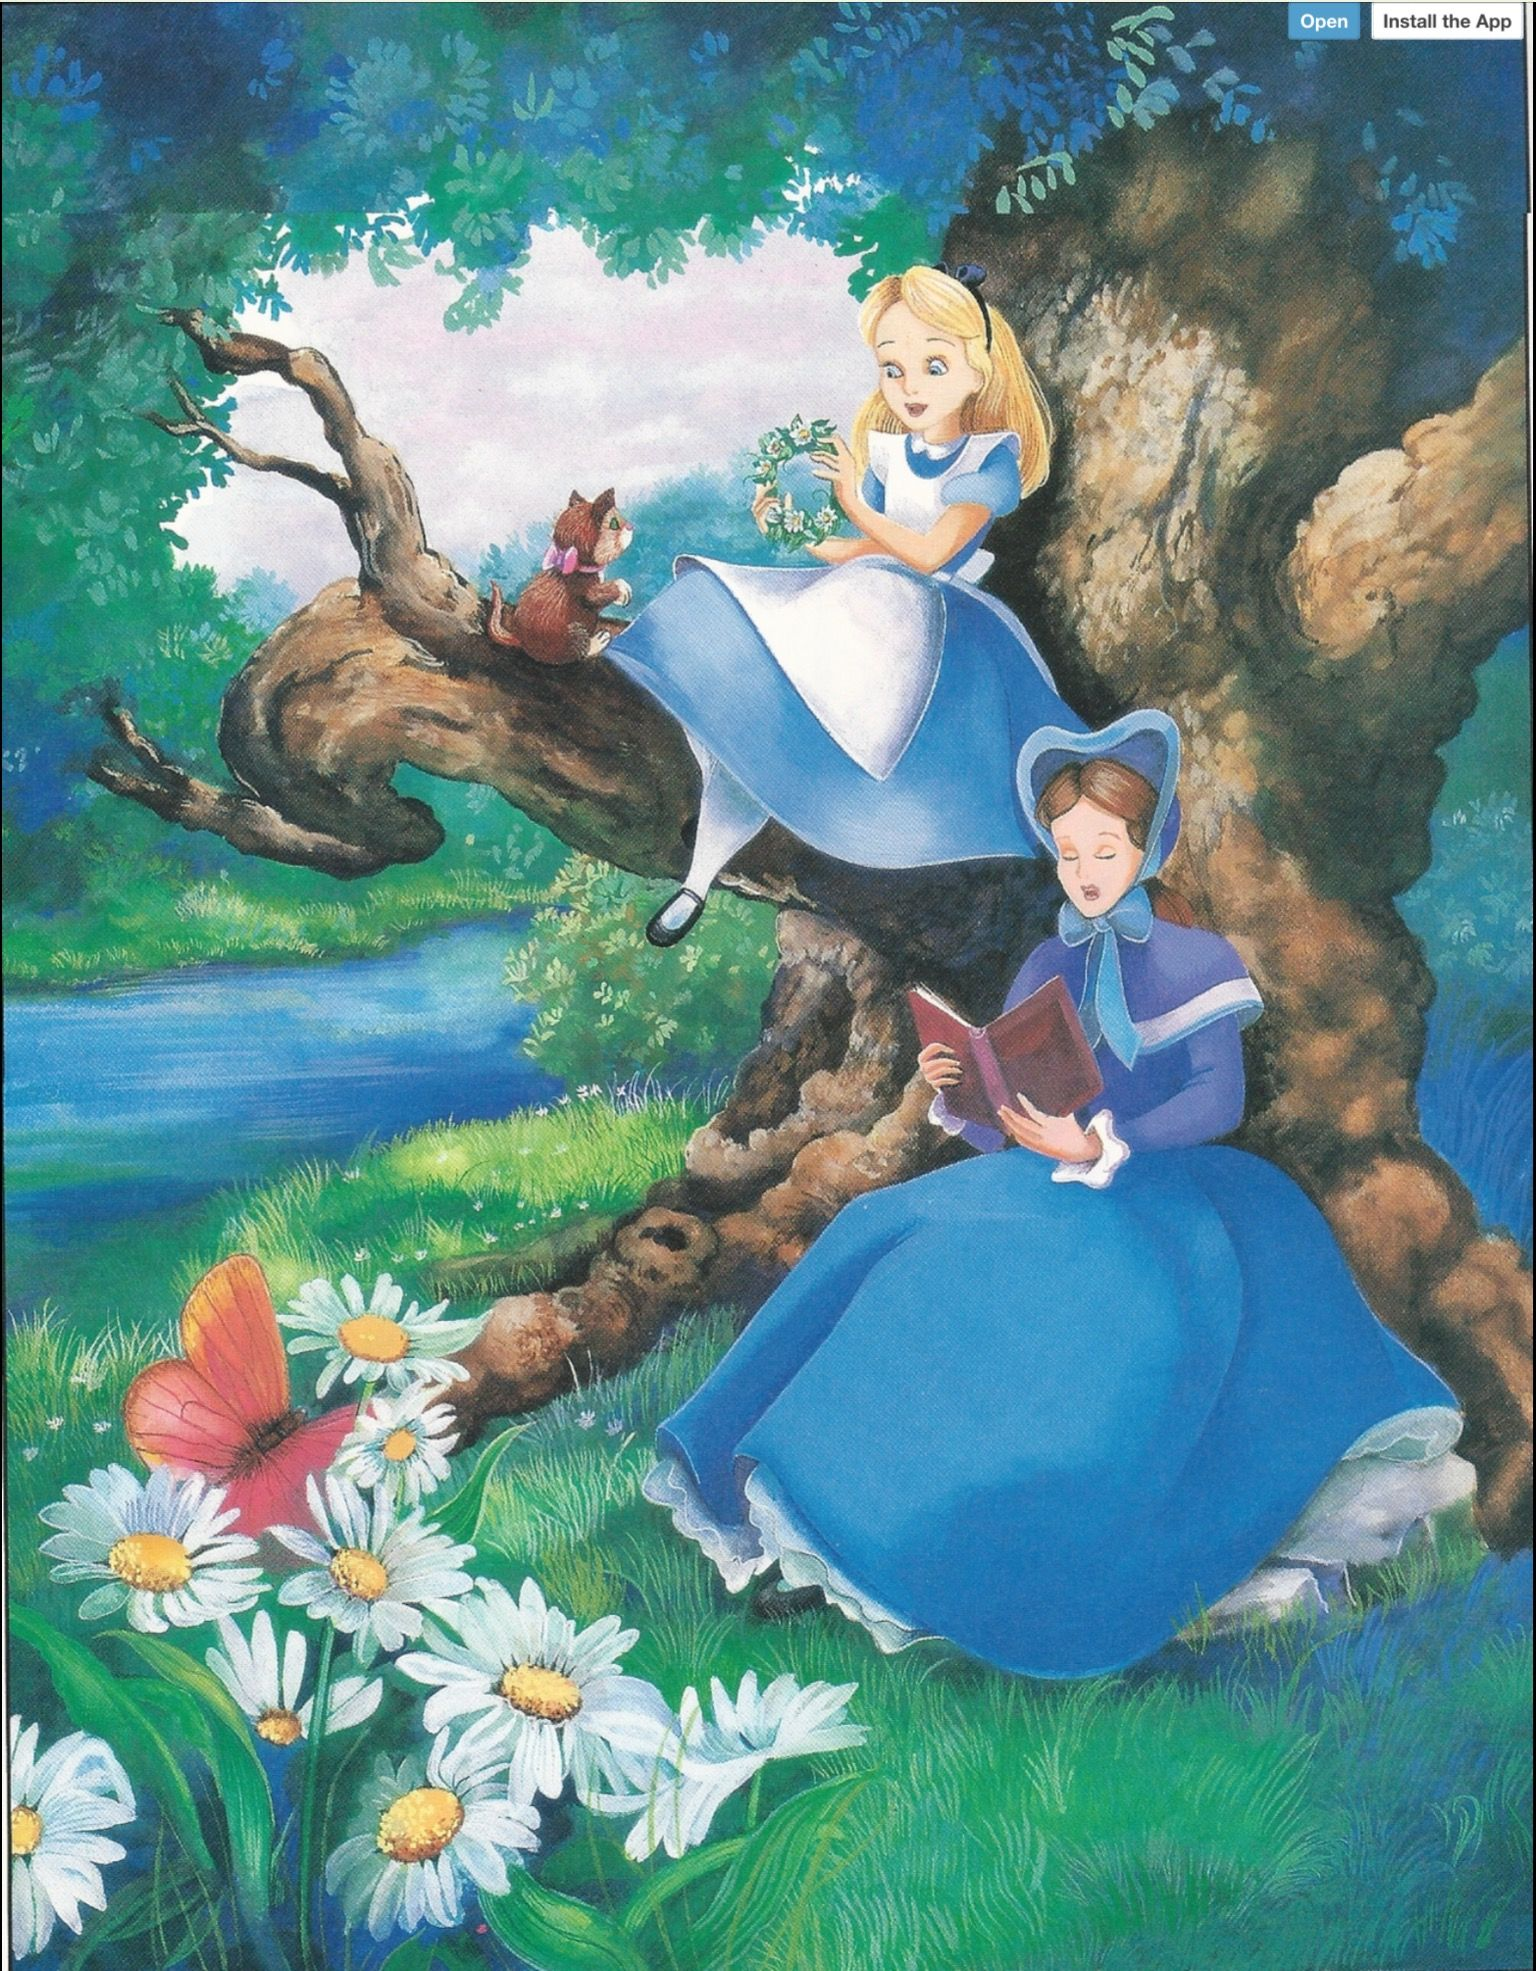 Franc Mateu And Holly Hannon Illustration Teddy Slater 1995 Illustrated Classic